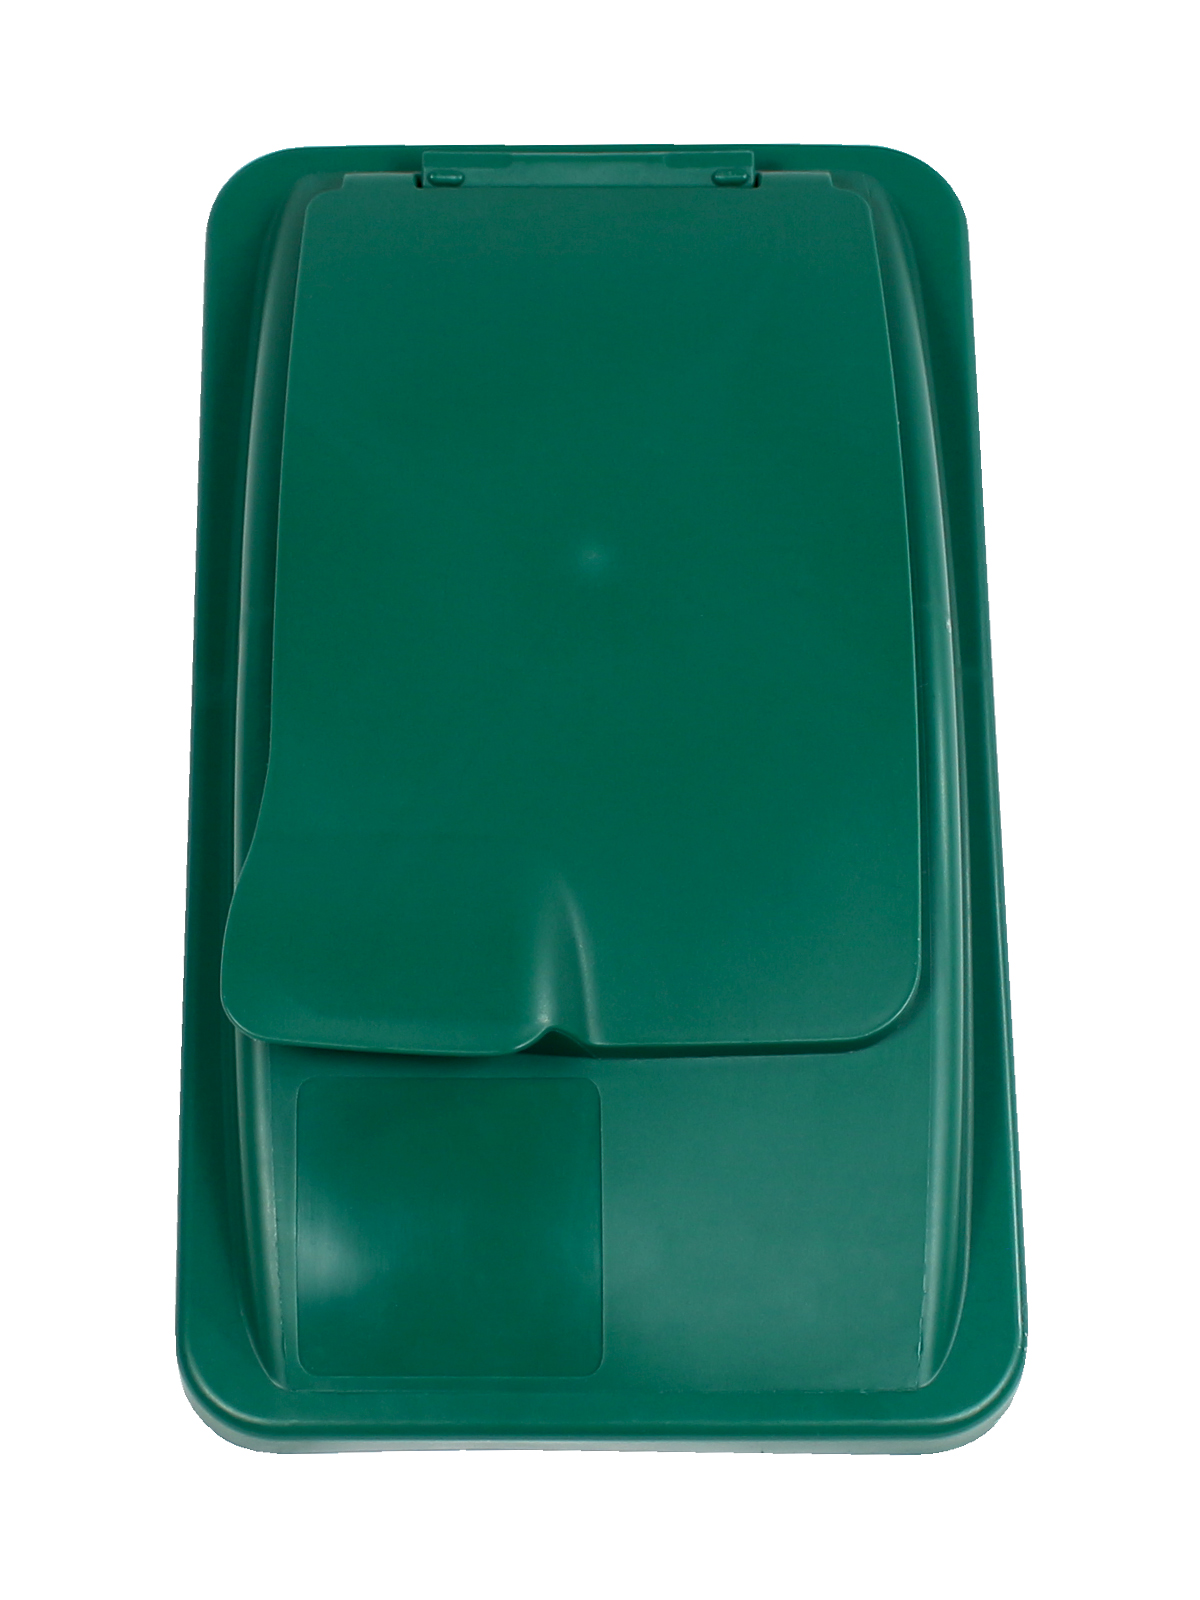 WASTE WATCHER - Lid - Solid Lift - Dark Green